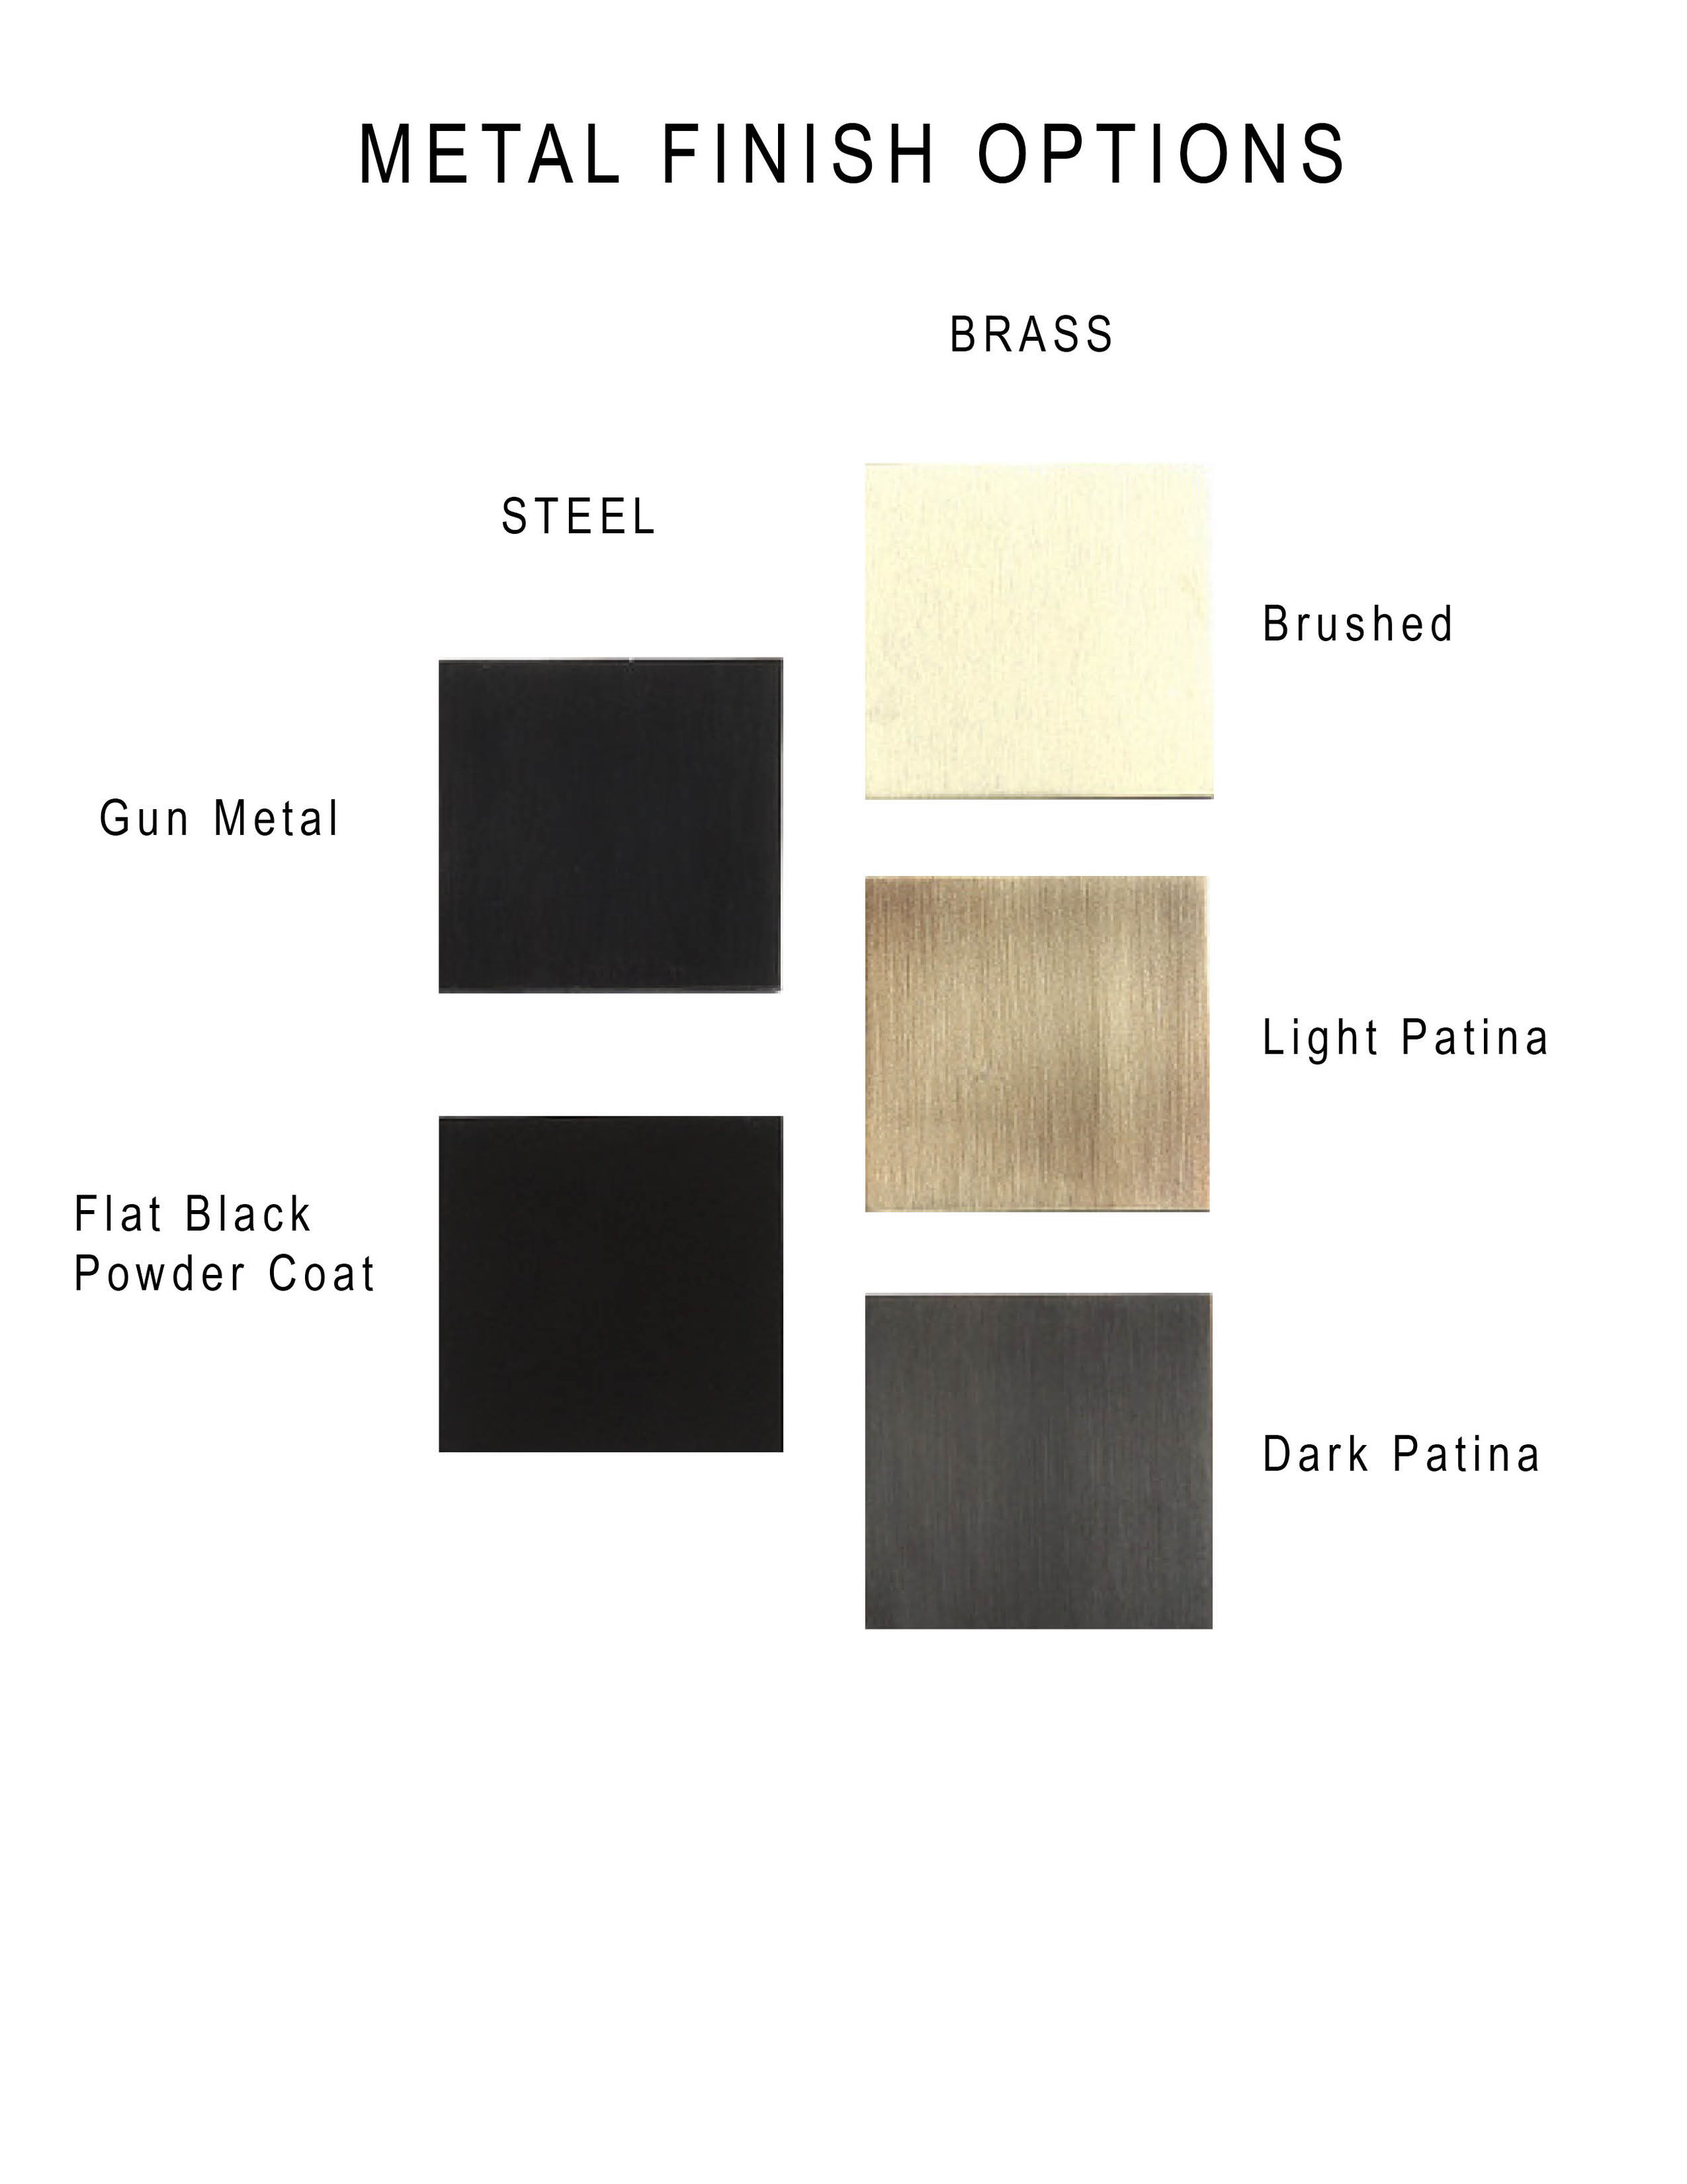 METAL FINISH OPTION PAGE.jpg